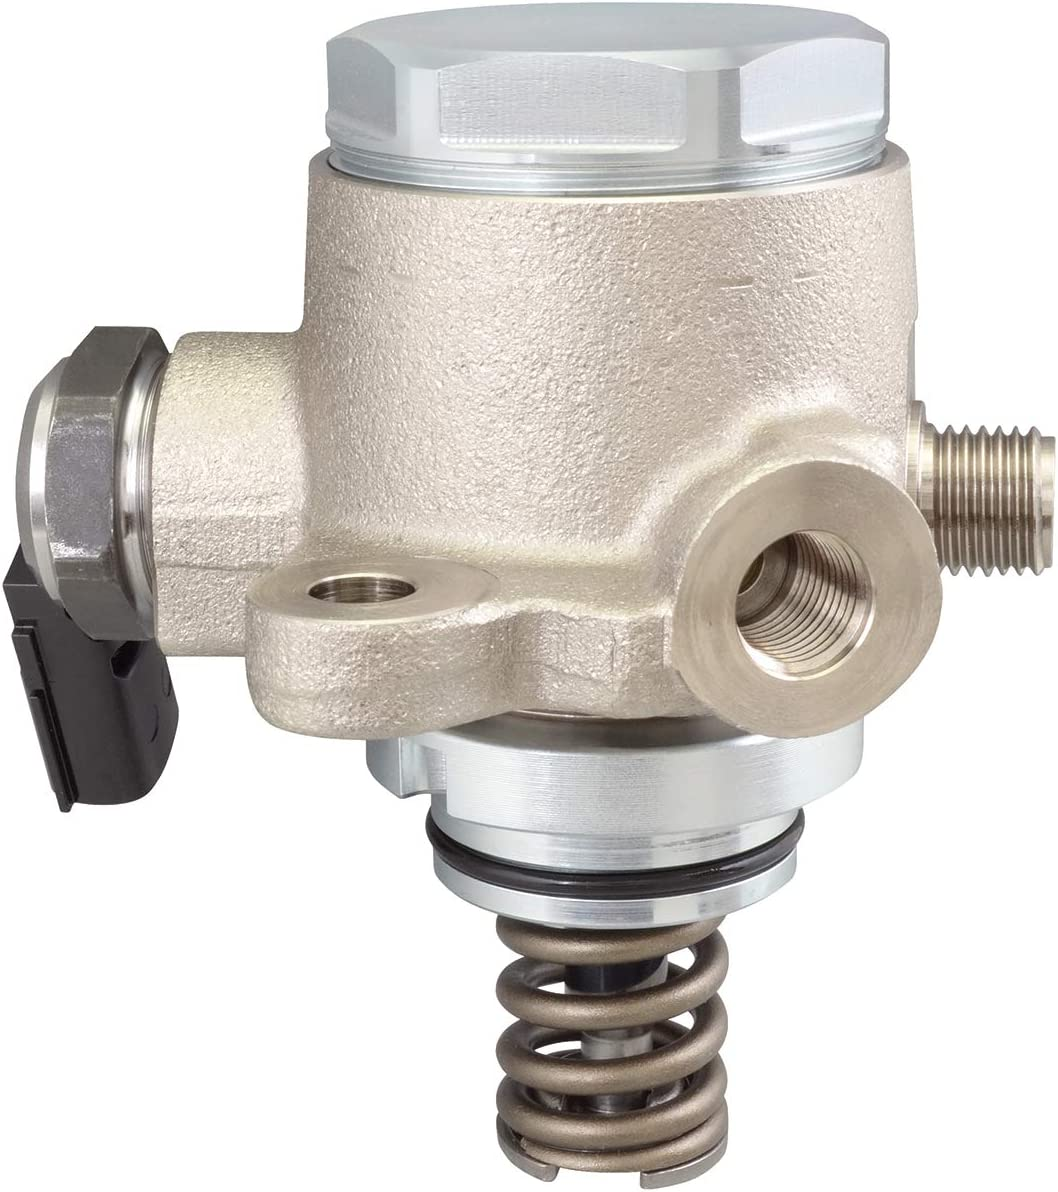 Hitachi HPP0026 Direct New arrival Injection Spring new work one after another High Fuel Pressure Pump